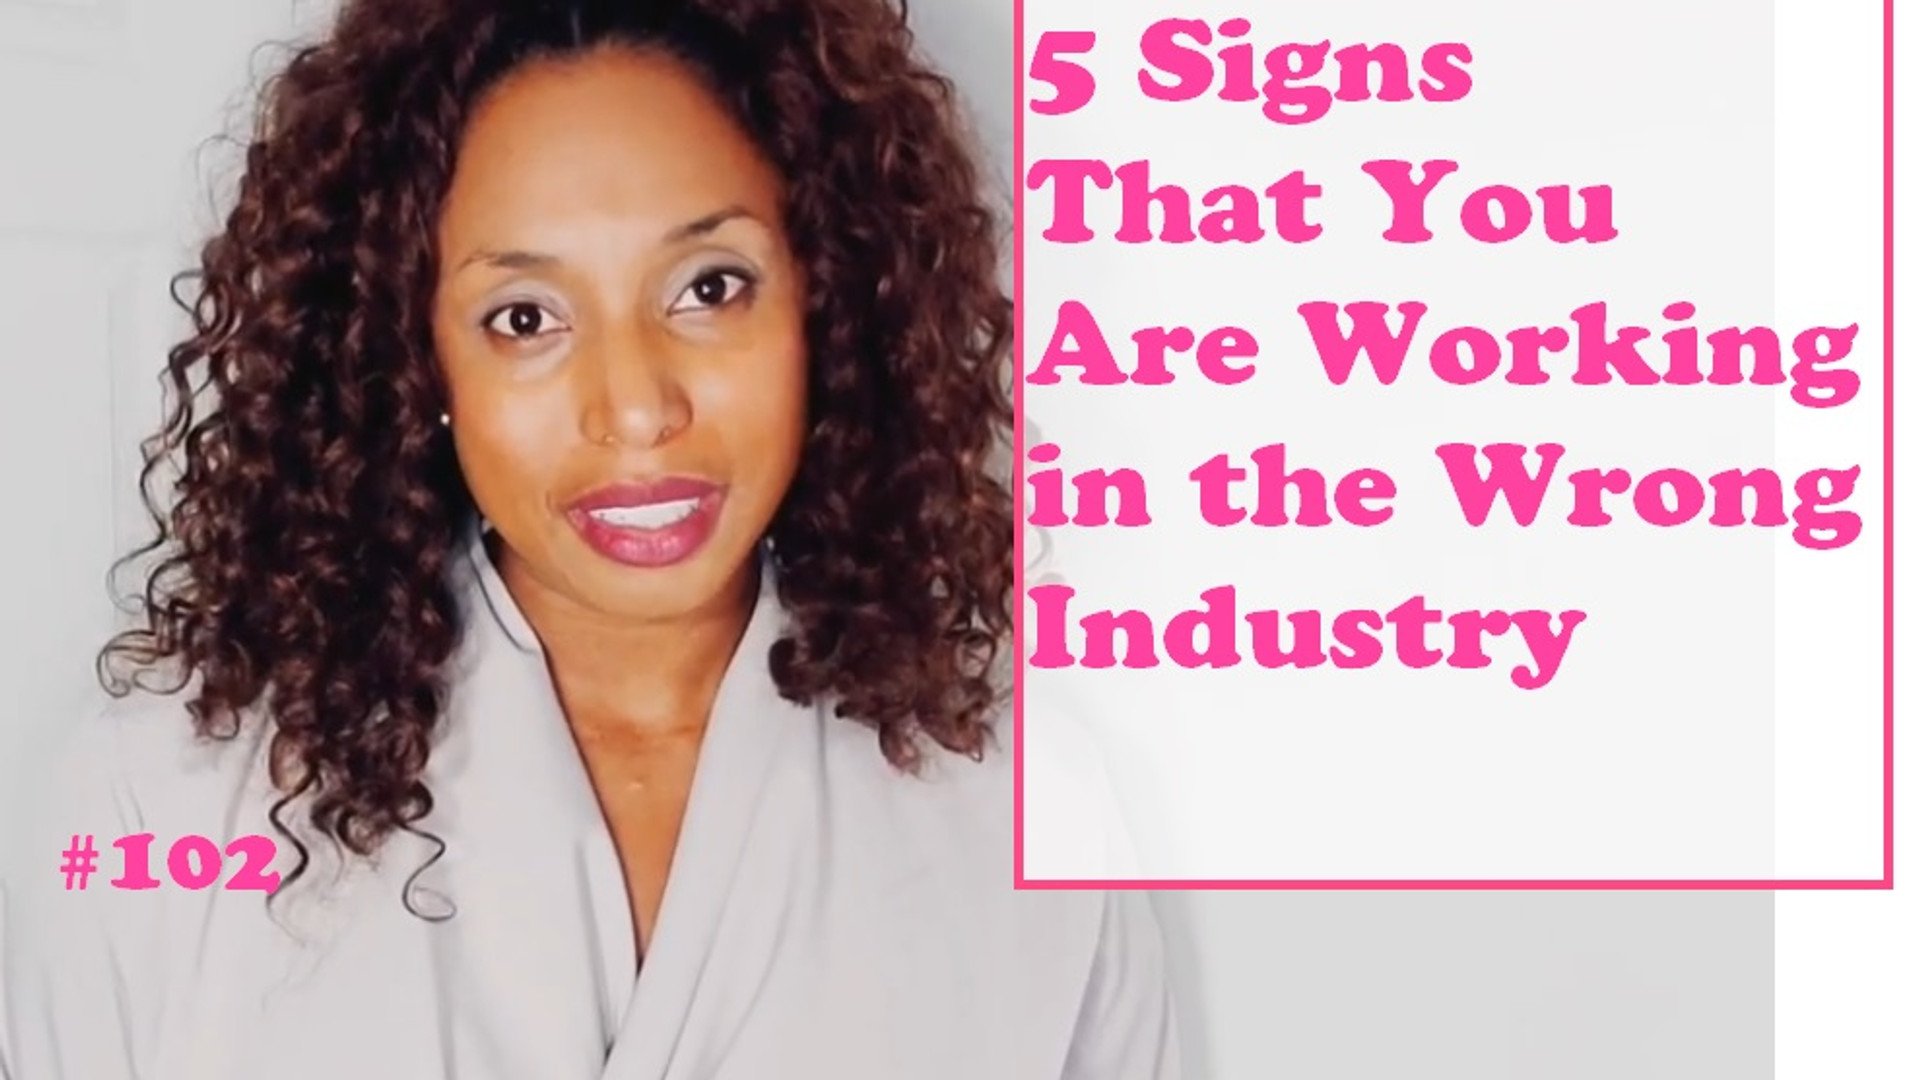 5 Signs that You Are Working in the Wrong Industry